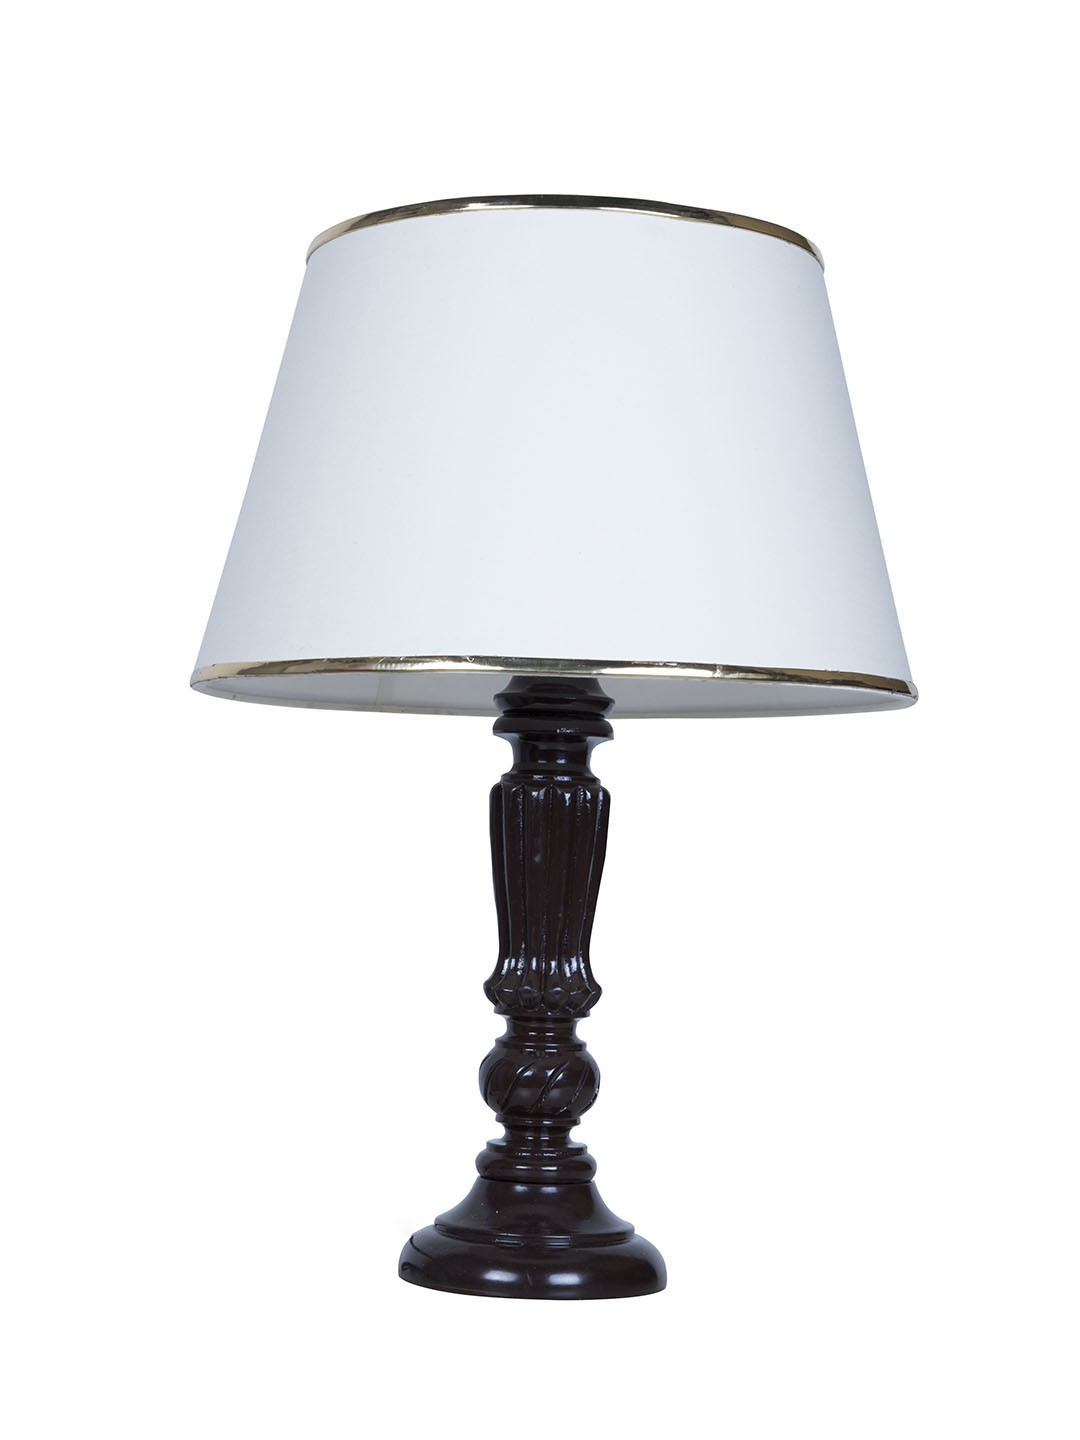 Brown Distressed Country Table Lamp with Gold Cream Shade